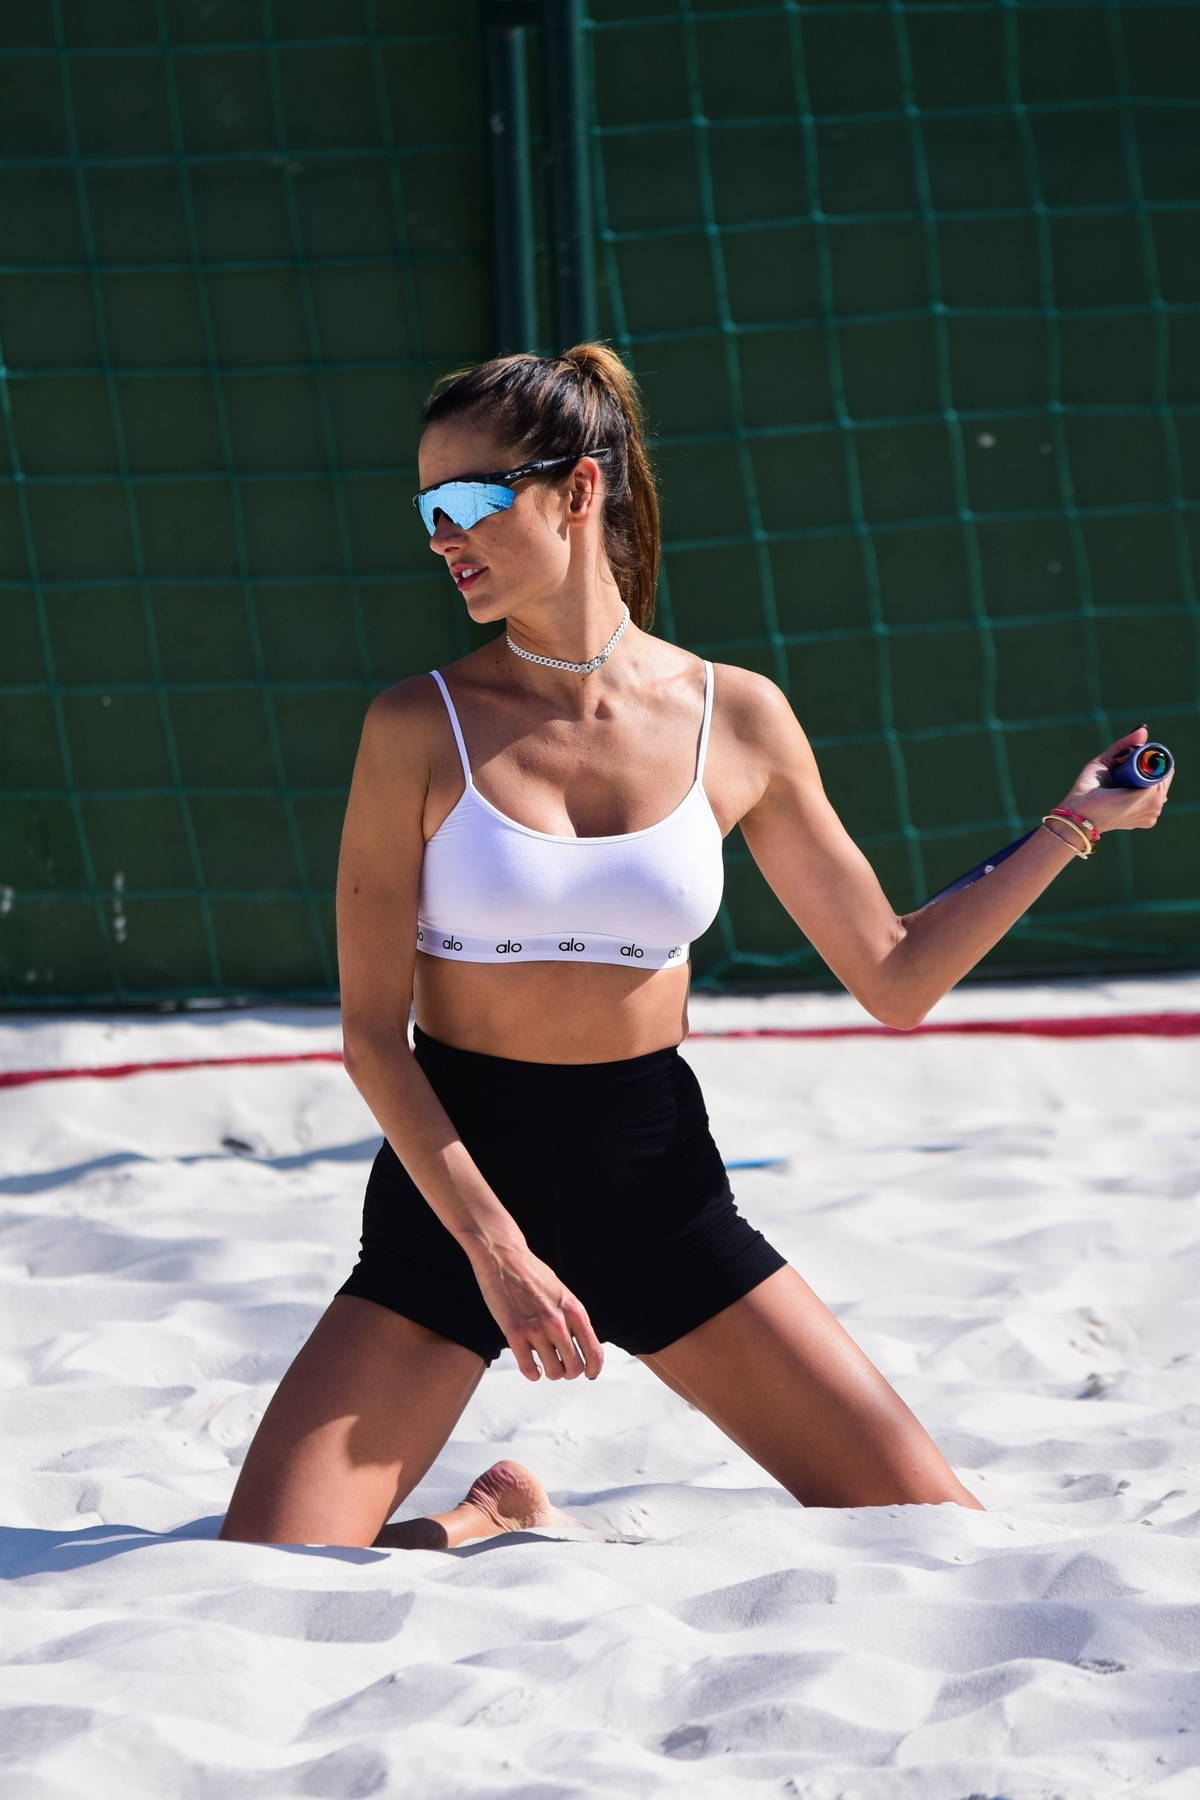 Alessandra Ambrosio displays her toned abs while while playing beach tennis with a friend in Sao Paulo, Brazil